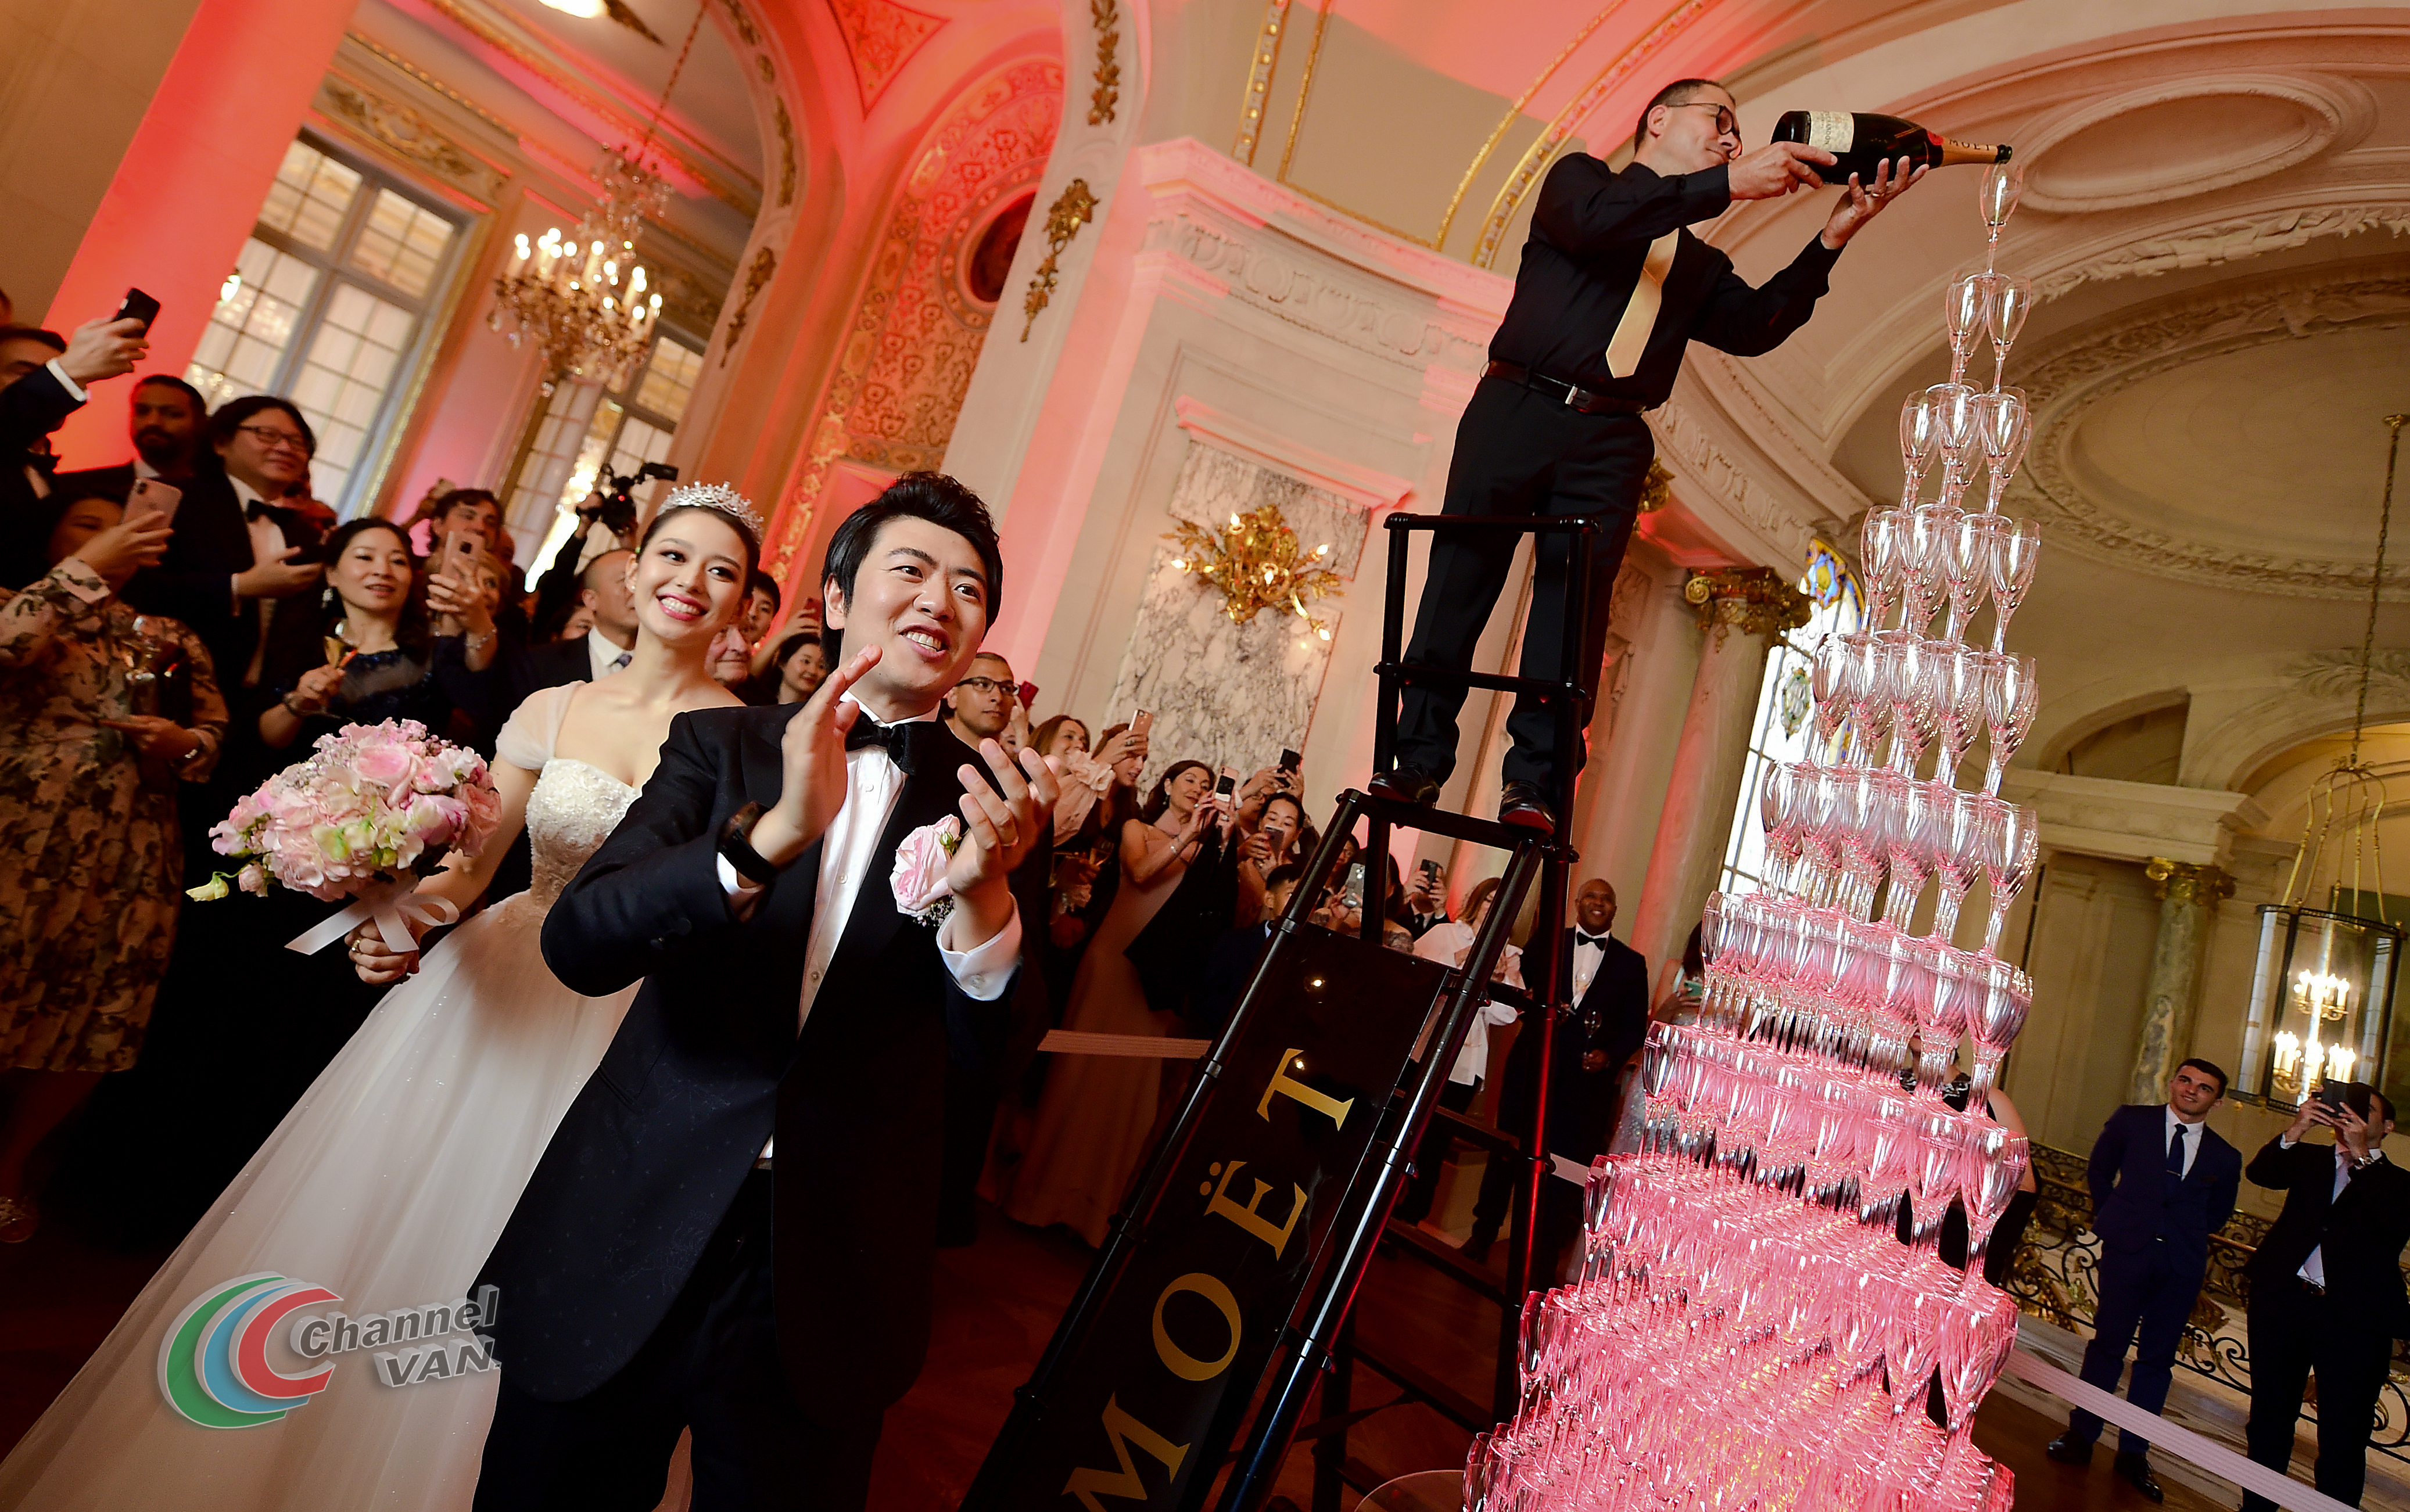 PARIS, FRANCE - JUNE 02: Pianists Lang Lang & Gina Alice celebrate their wedding in front of a Moet et Chandon Champagne pyramid during their Cocktail Wedding at Hotel Shangri-La on June 02, 2019 in Paris, France. (Photo by Anthony Ghnassia/Getty Images for Moet Henessy)